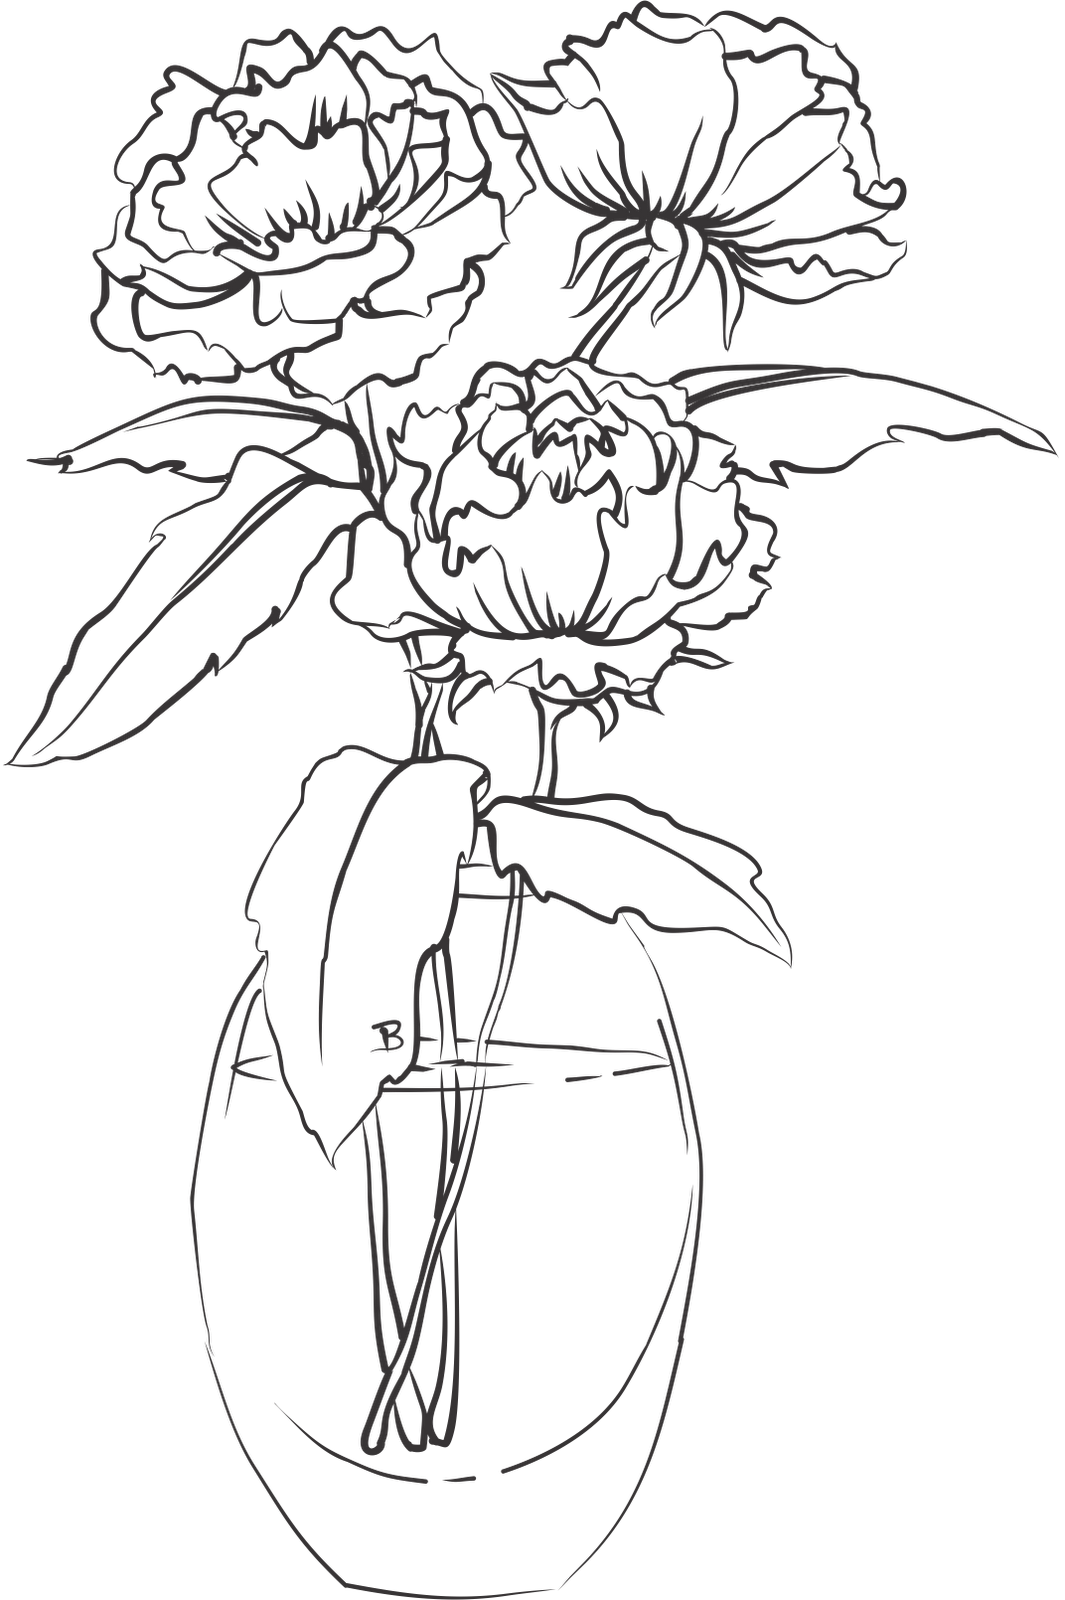 Flower vase clipart black and white image download 28+ Collection of Single Flower In Vase Drawing   High quality, free ... image download